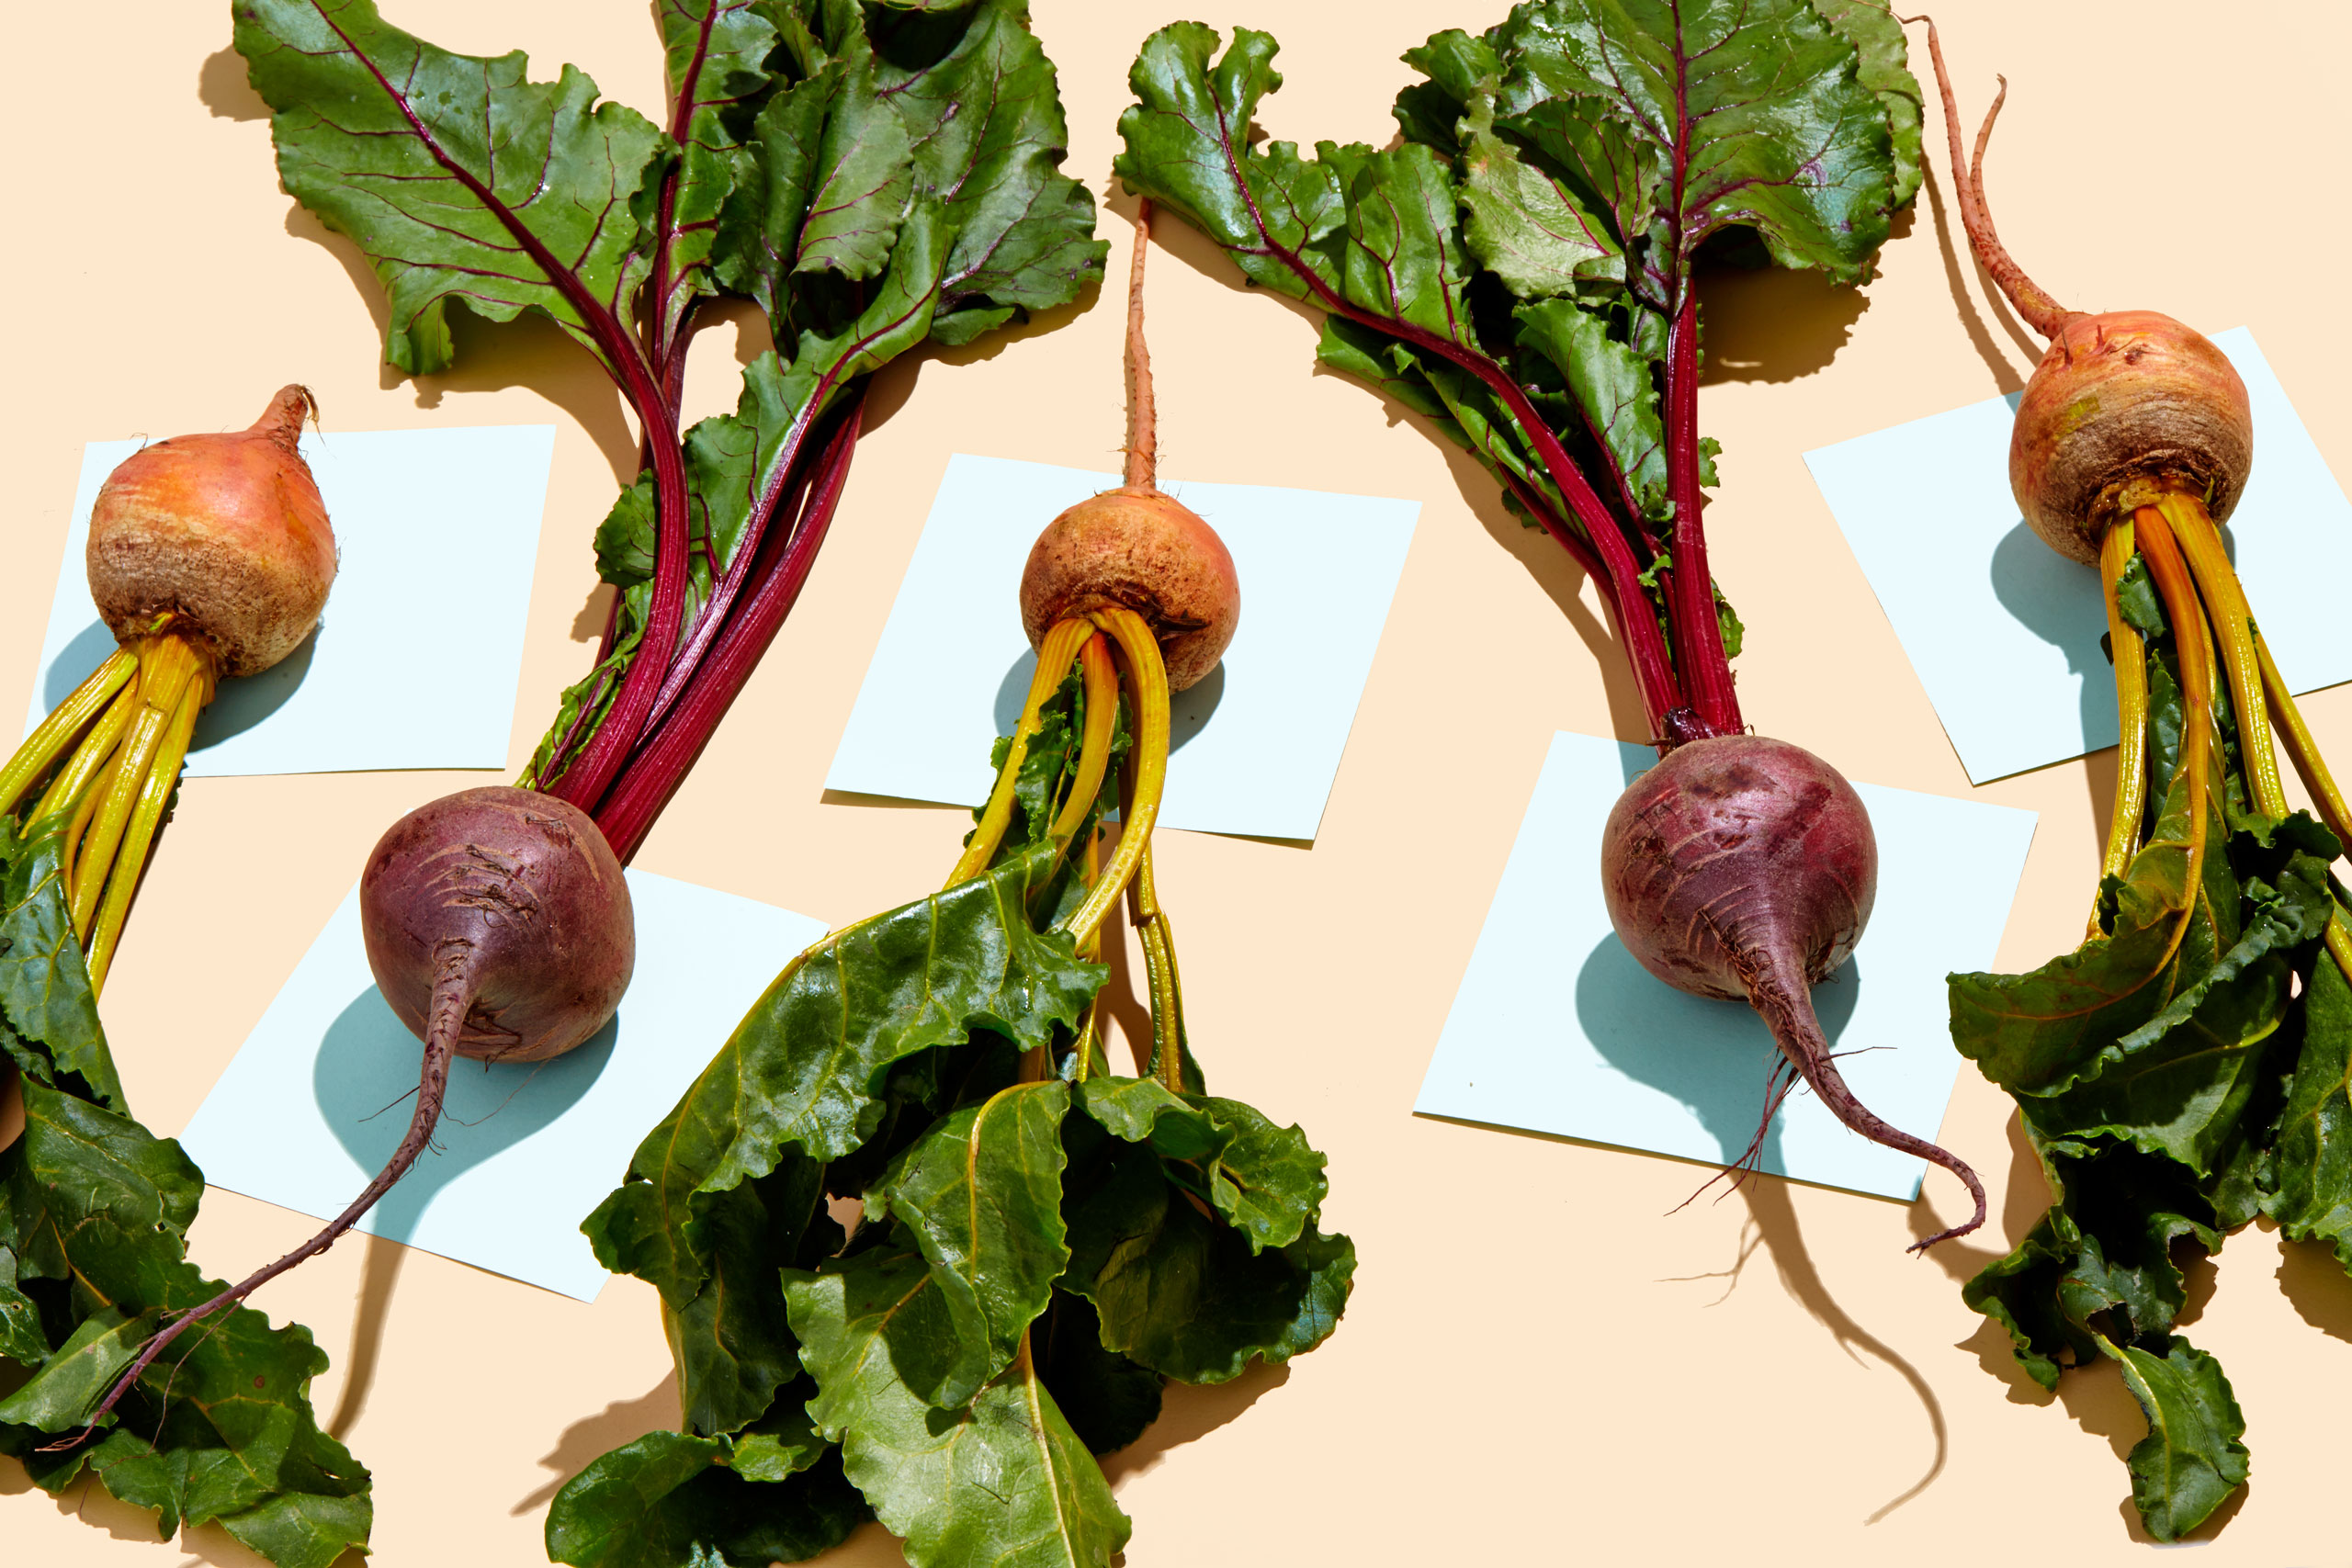 healthiest foods, health food, diet, nutrition, time.com stock, beets, vegetables